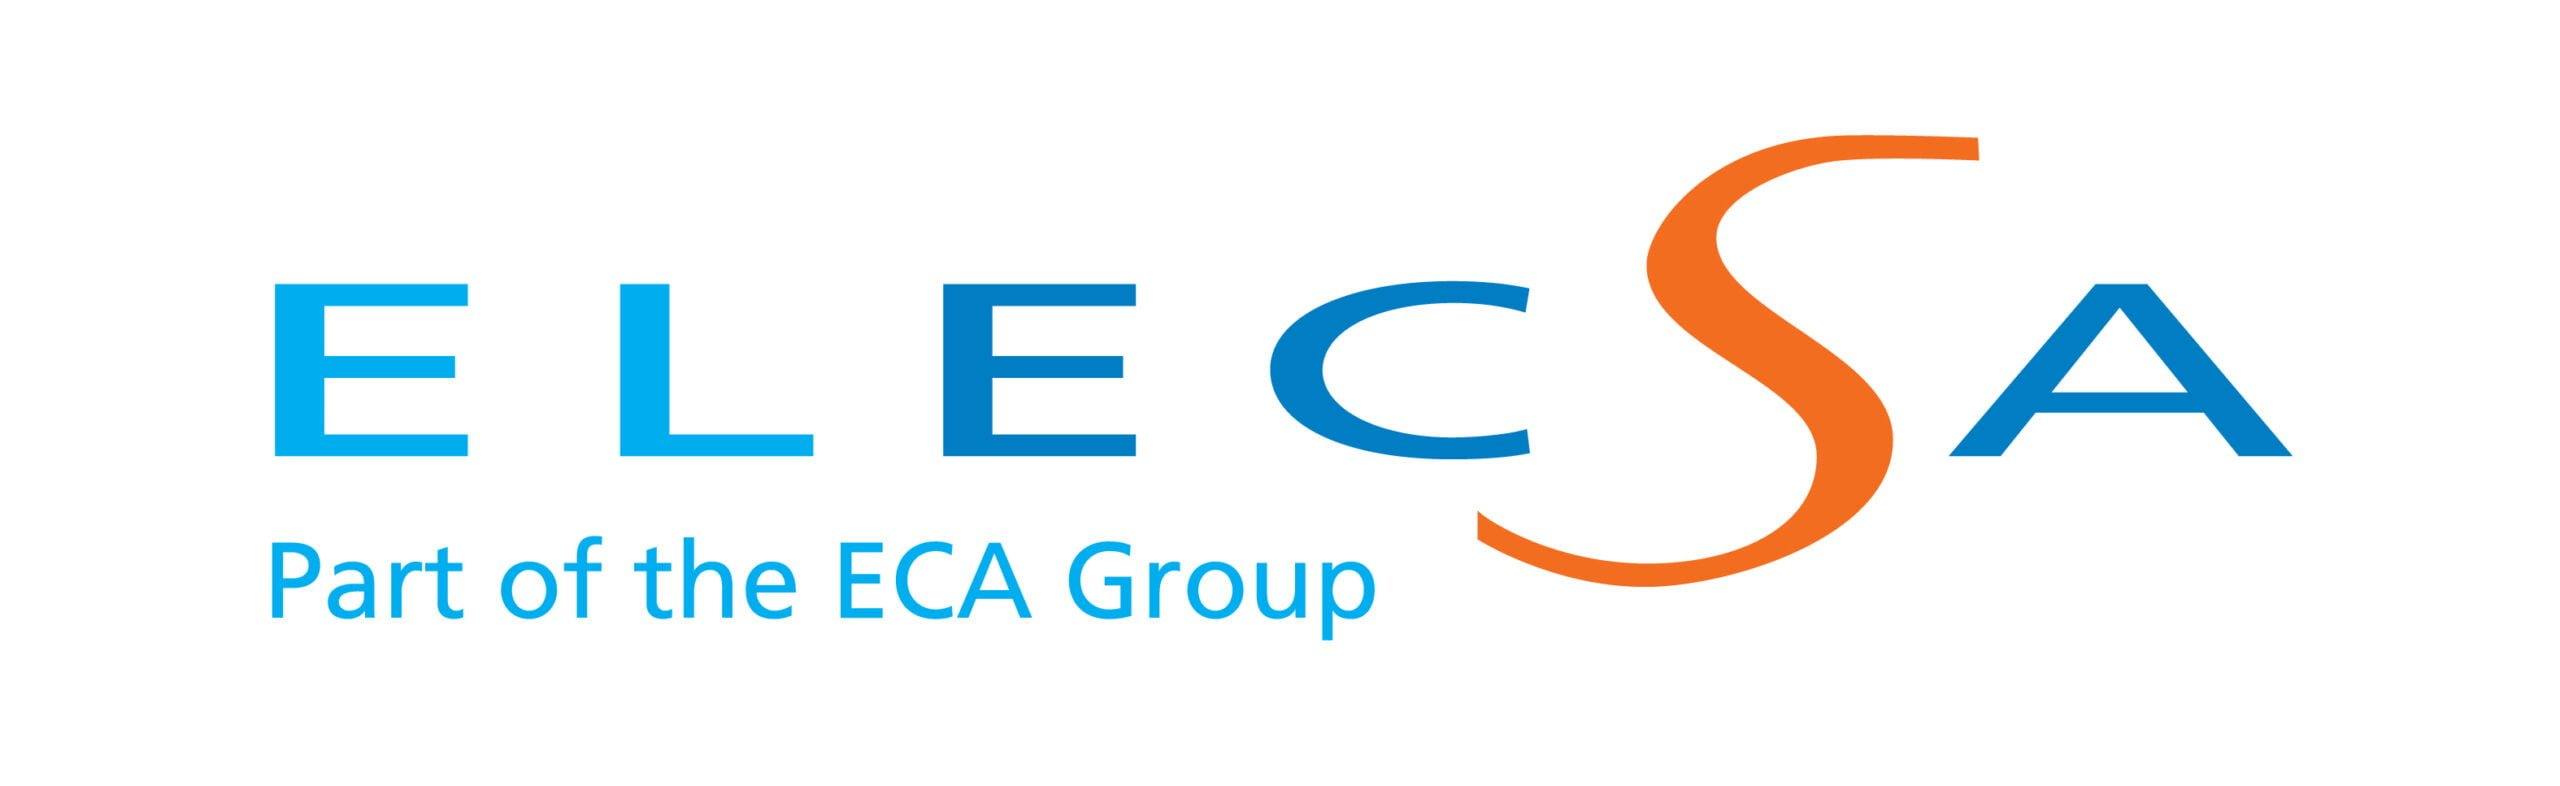 """Elecsa Part of the ECA Group"", Elecsa logo, Linn electrical Contractors Ltd, Trowbridge, Wiltshire"